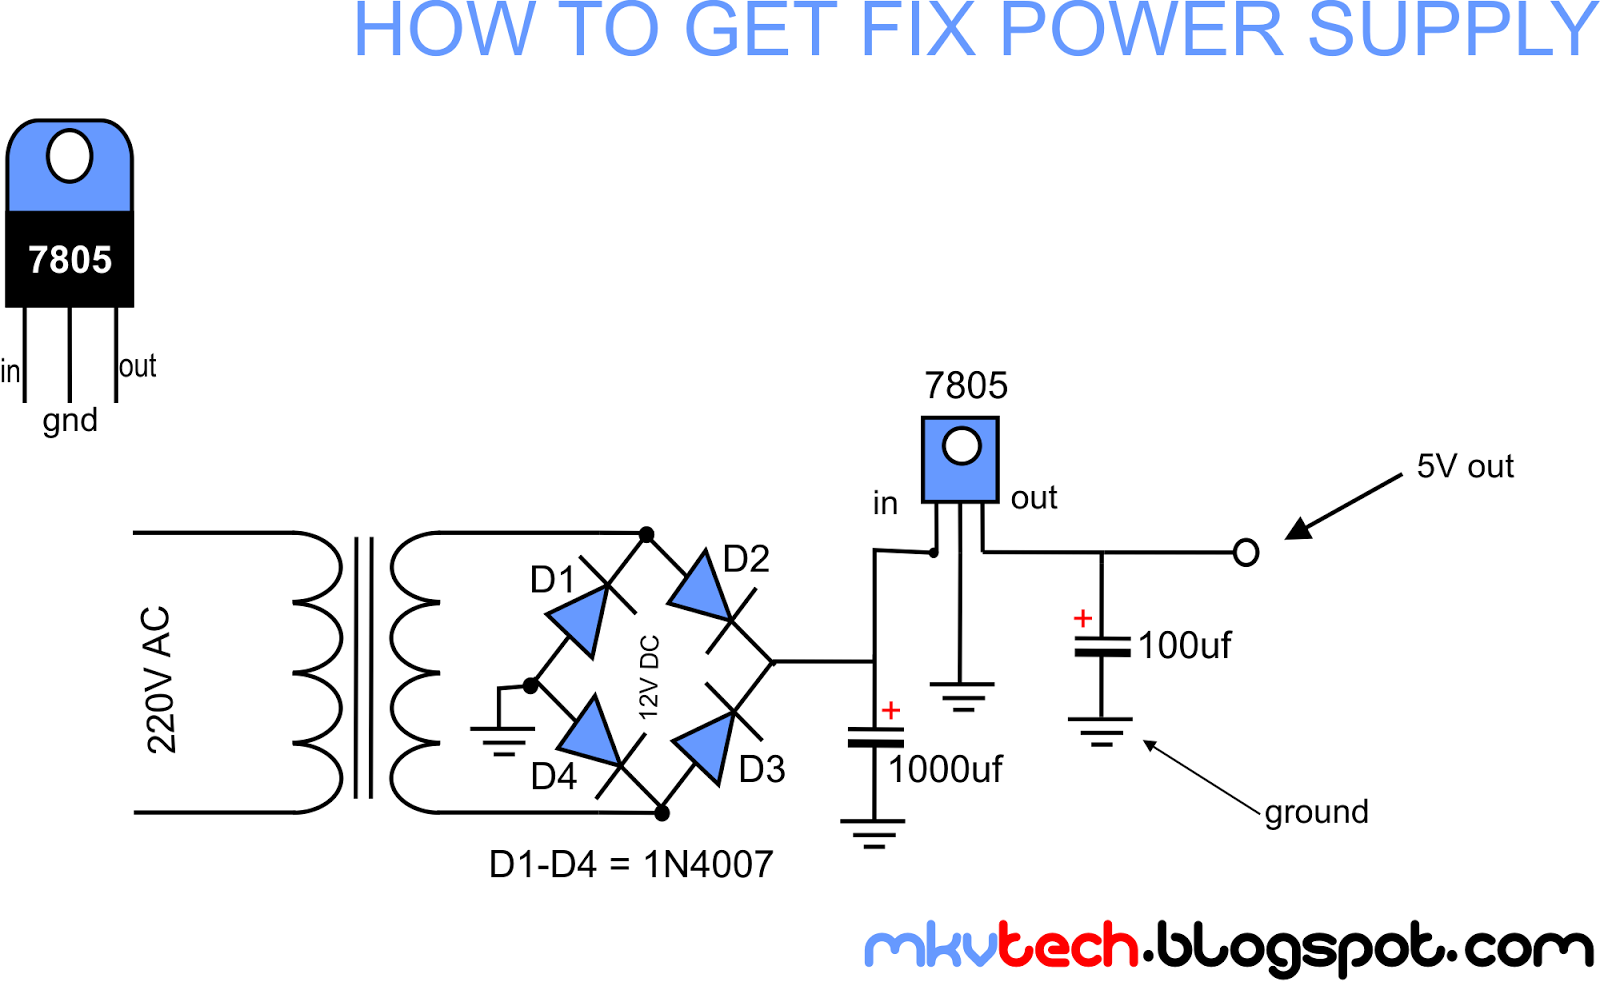 medium resolution of the circuit diagram shown above shows how to connect a linear regulator to create a fixed power supply to your load in this diagram we are going to use